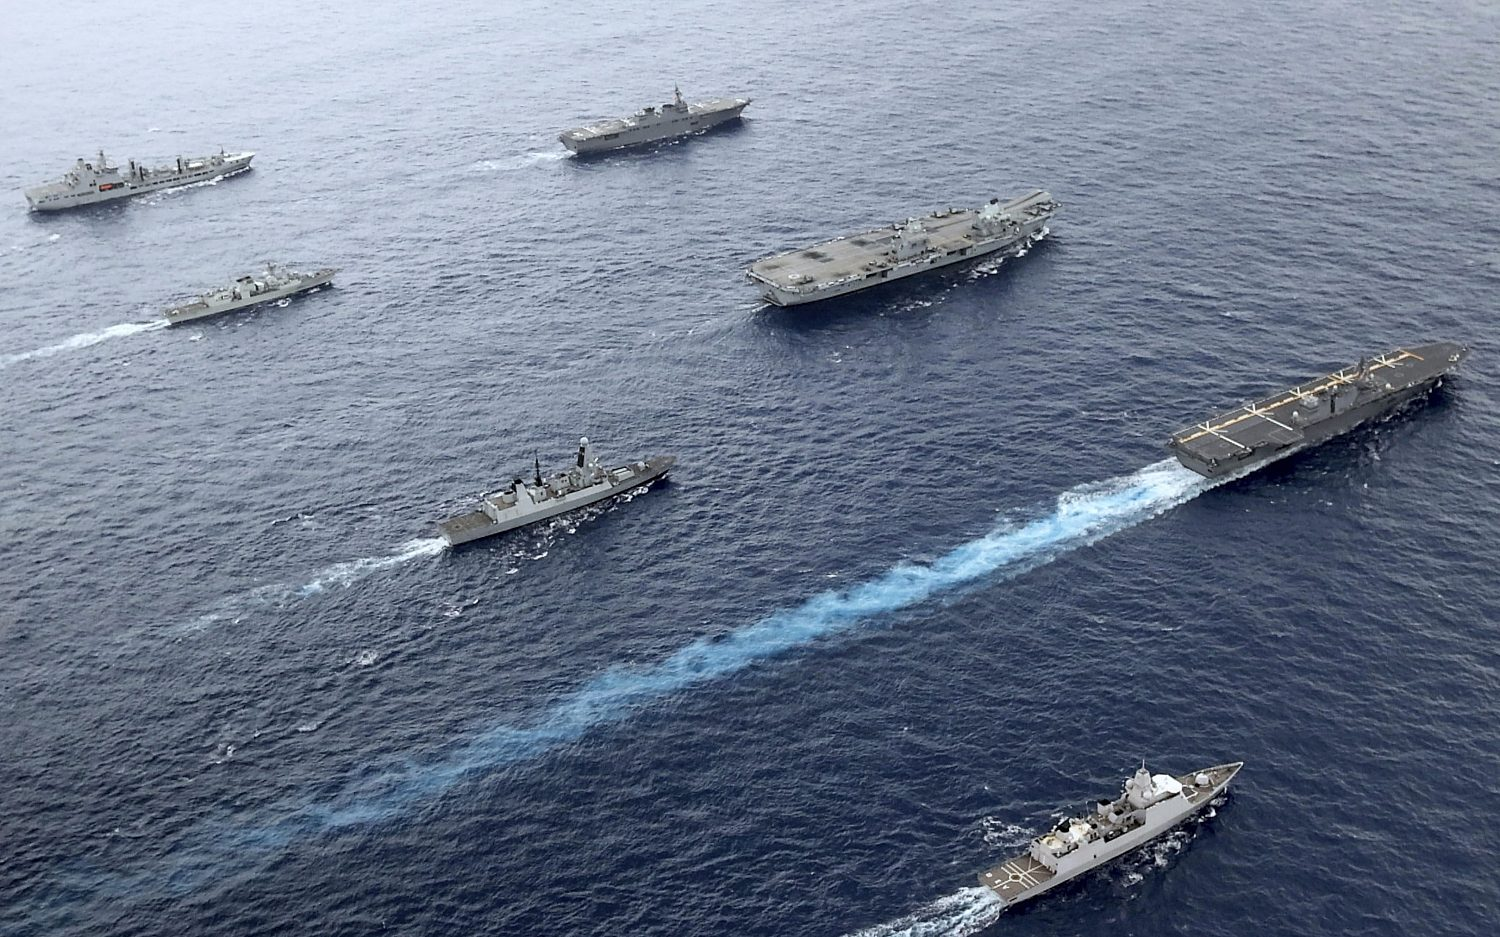 World powers make moves in Indo-Pacific region